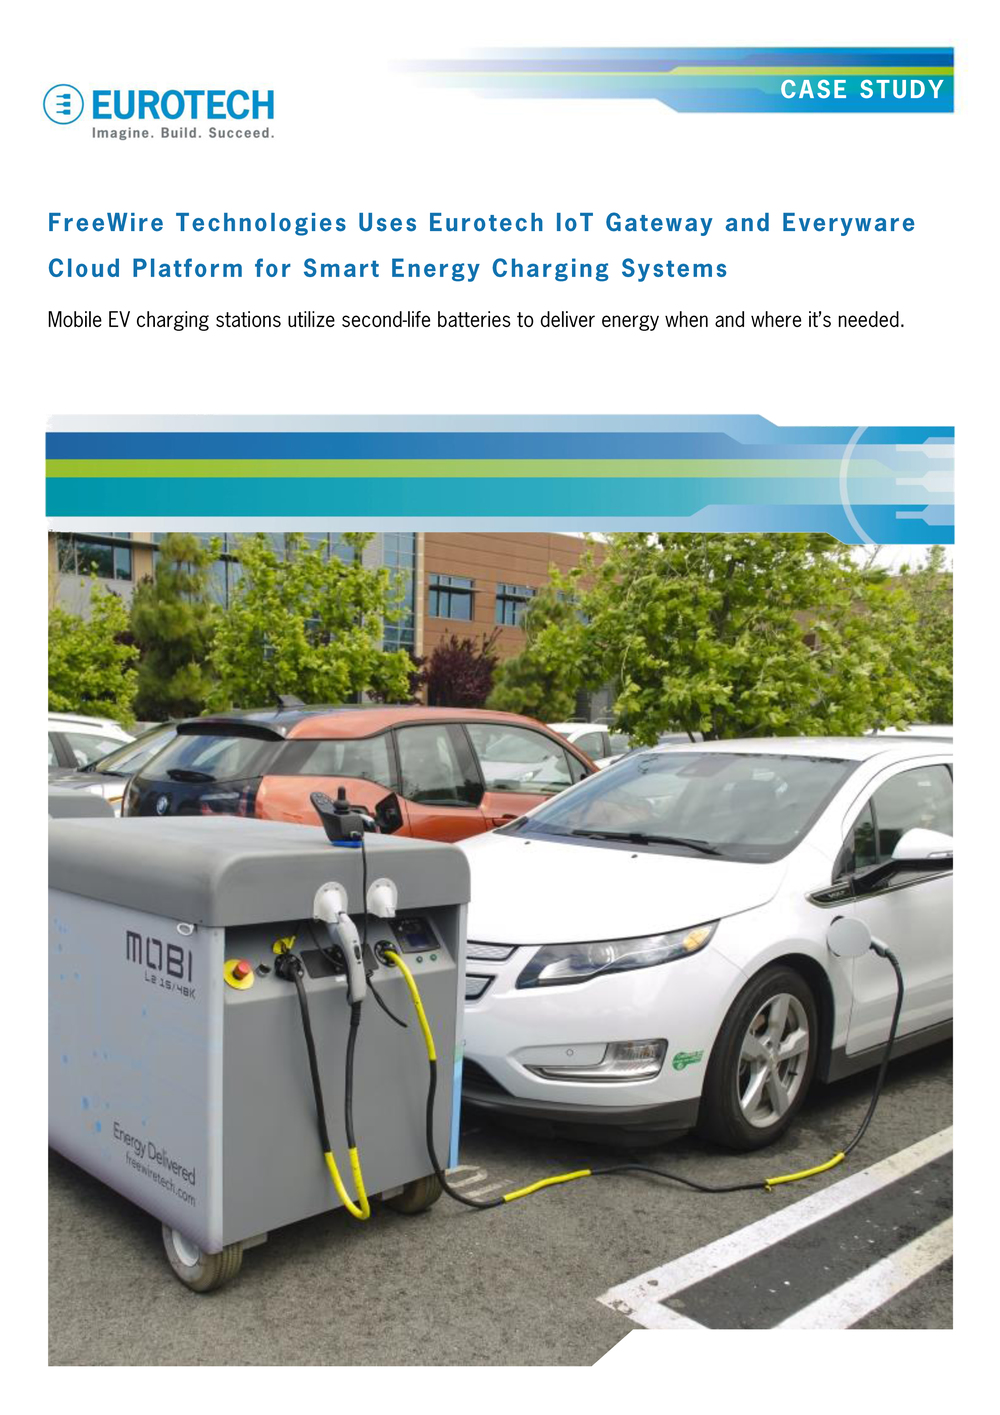 FreeWire uses Eurotech's IoT Gateway for smart mobile EV charging